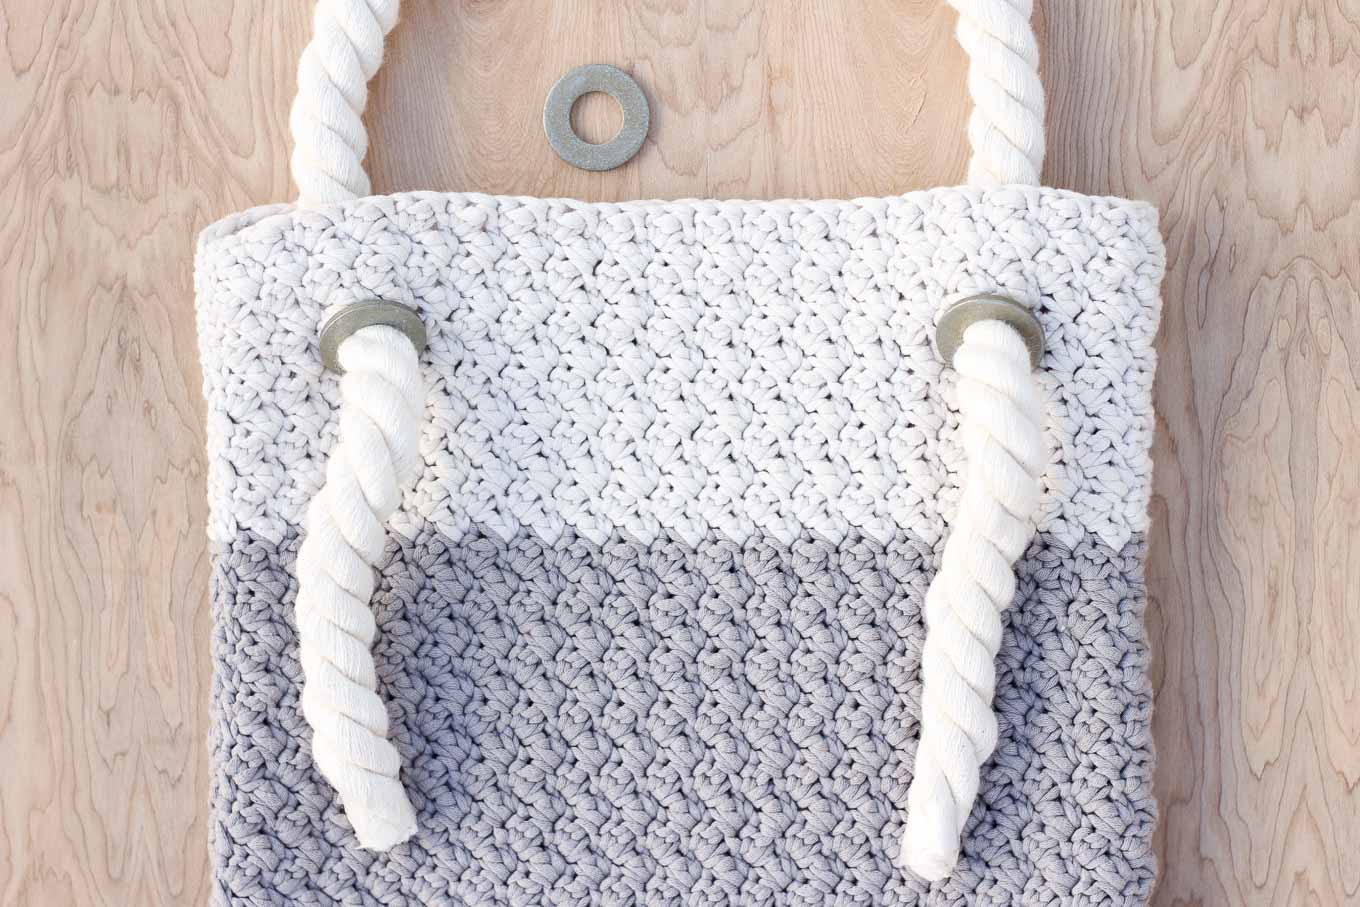 Free crochet bag pattern beginners 14 make do crew this free crochet bag pattern for beginners is deceptively simple neutral colors and a beautiful bankloansurffo Image collections